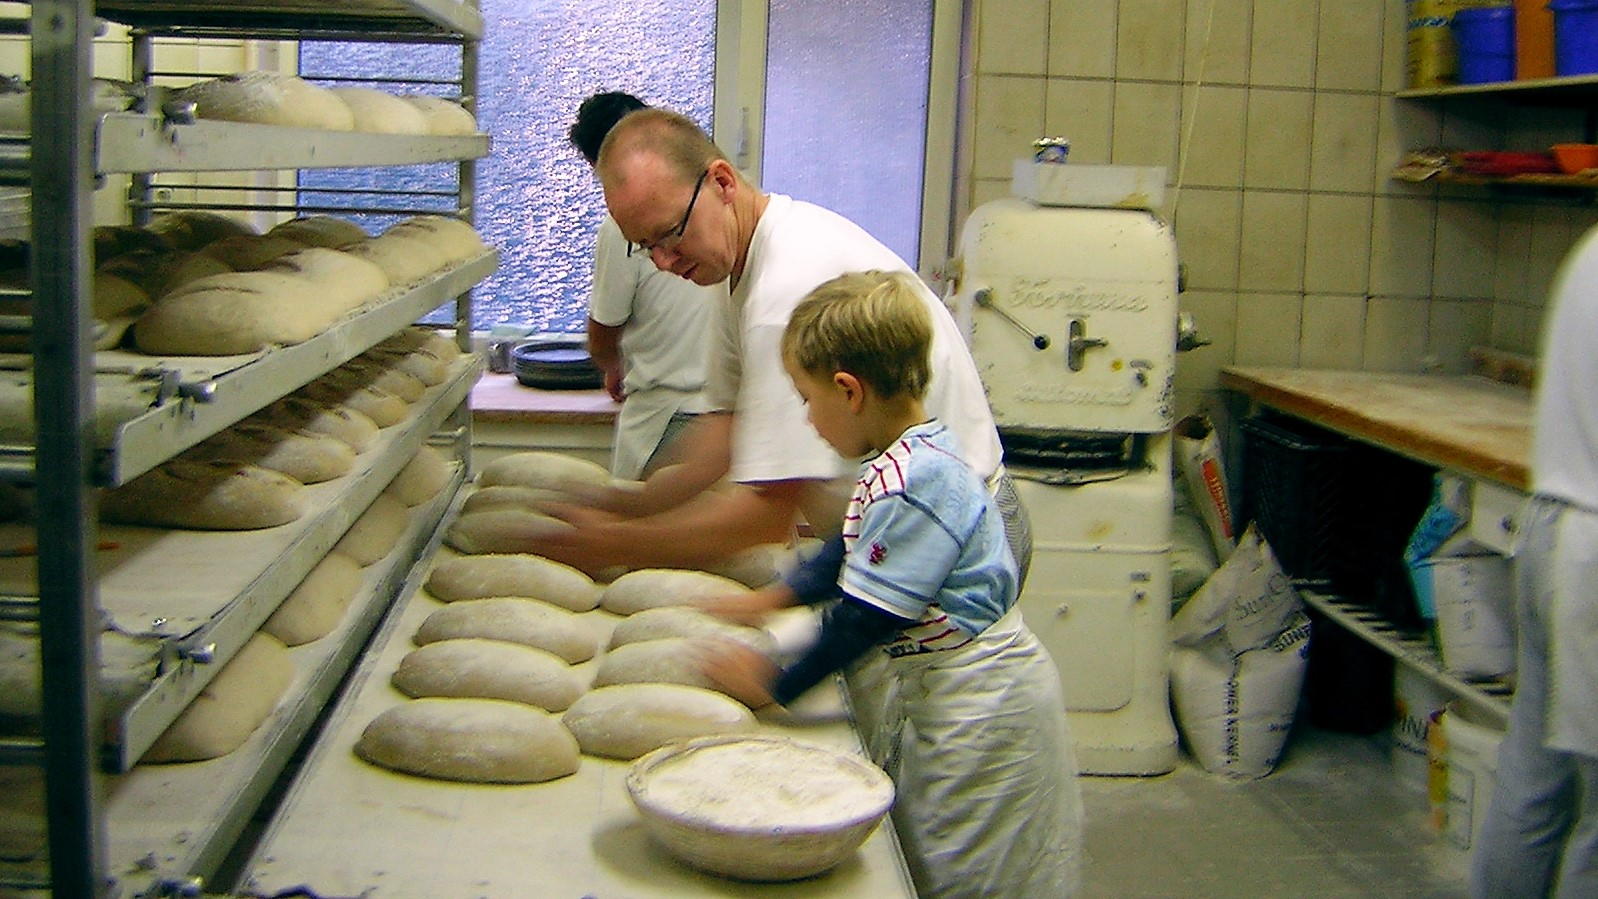 Image: man teaches a child to bake bread